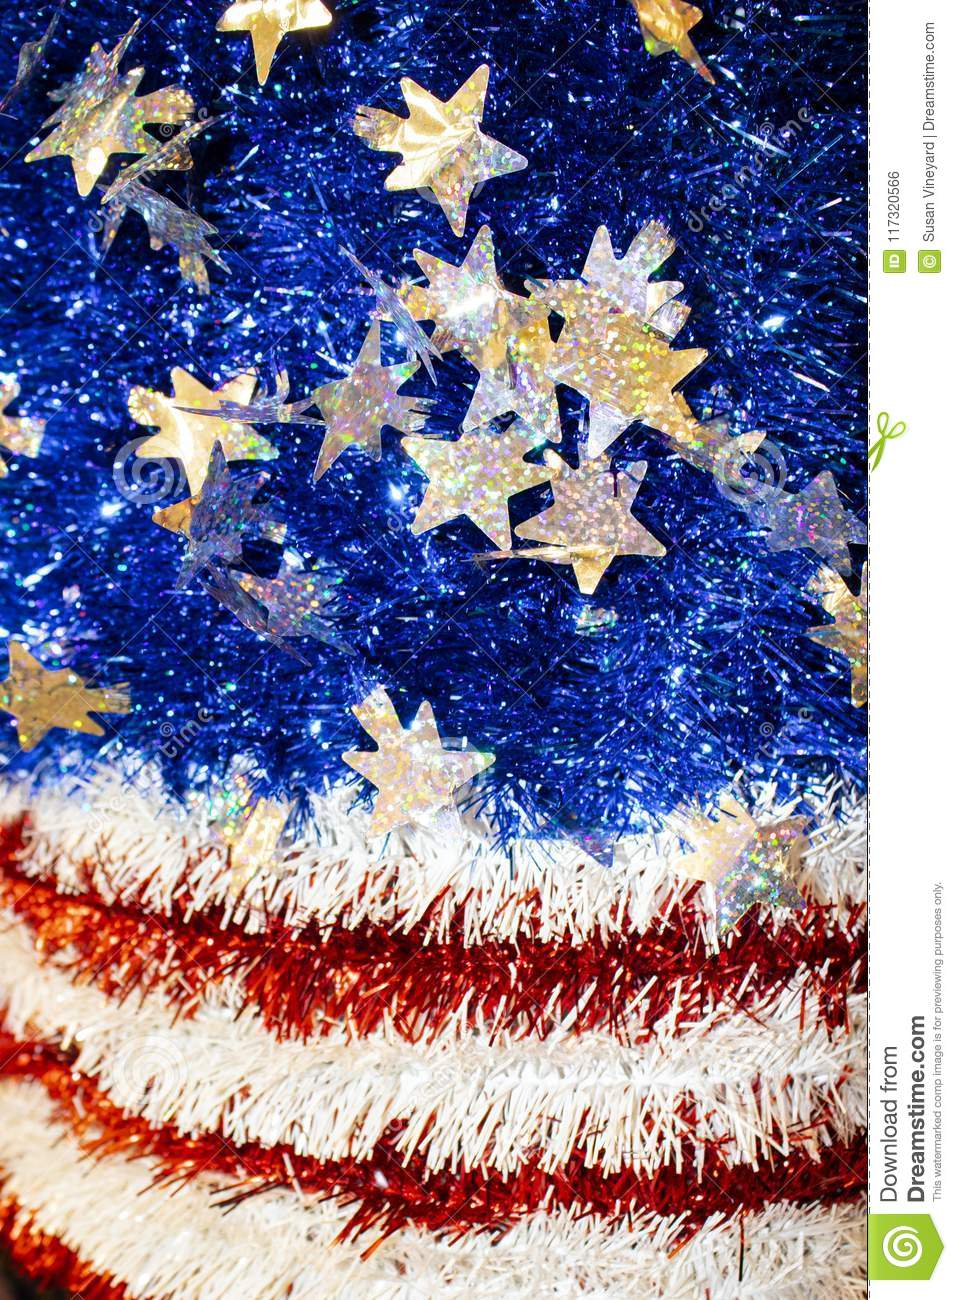 American Flag motif in red white and blue tinsel with sparkly stars with a bokeh blur effect - background or design element